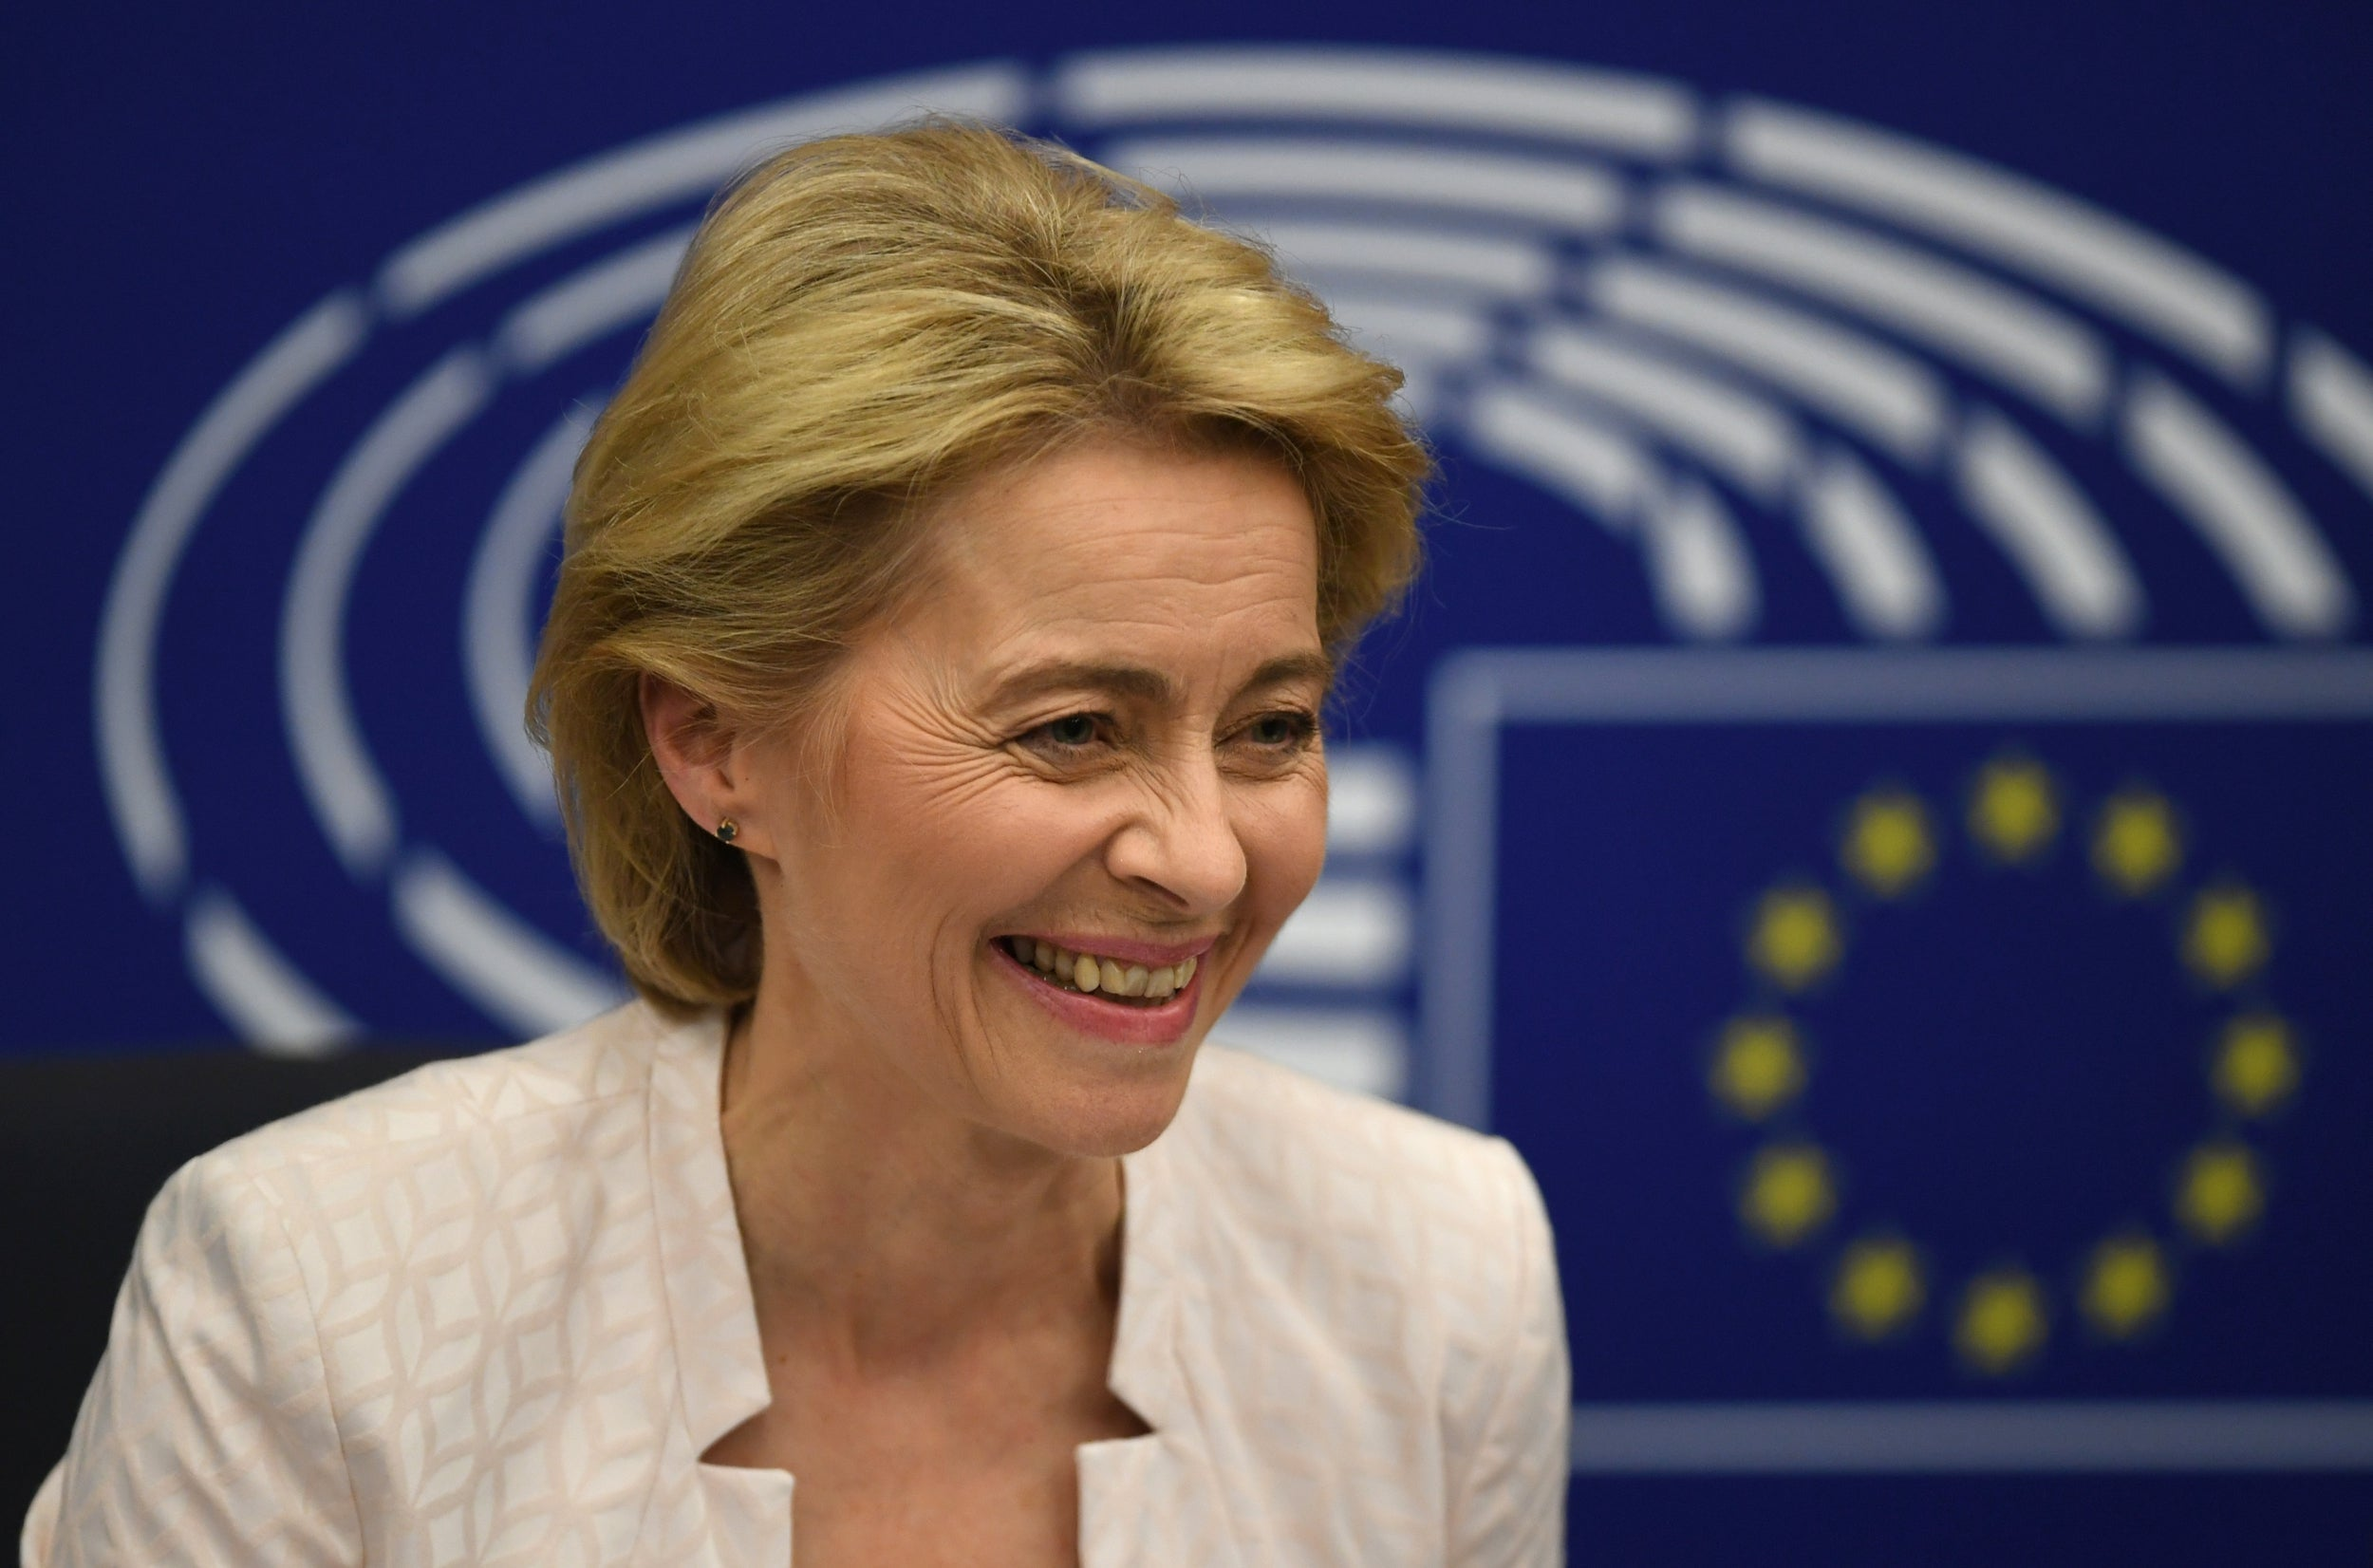 Ursula von der Leyen: Who is the first woman president of the EU commission?